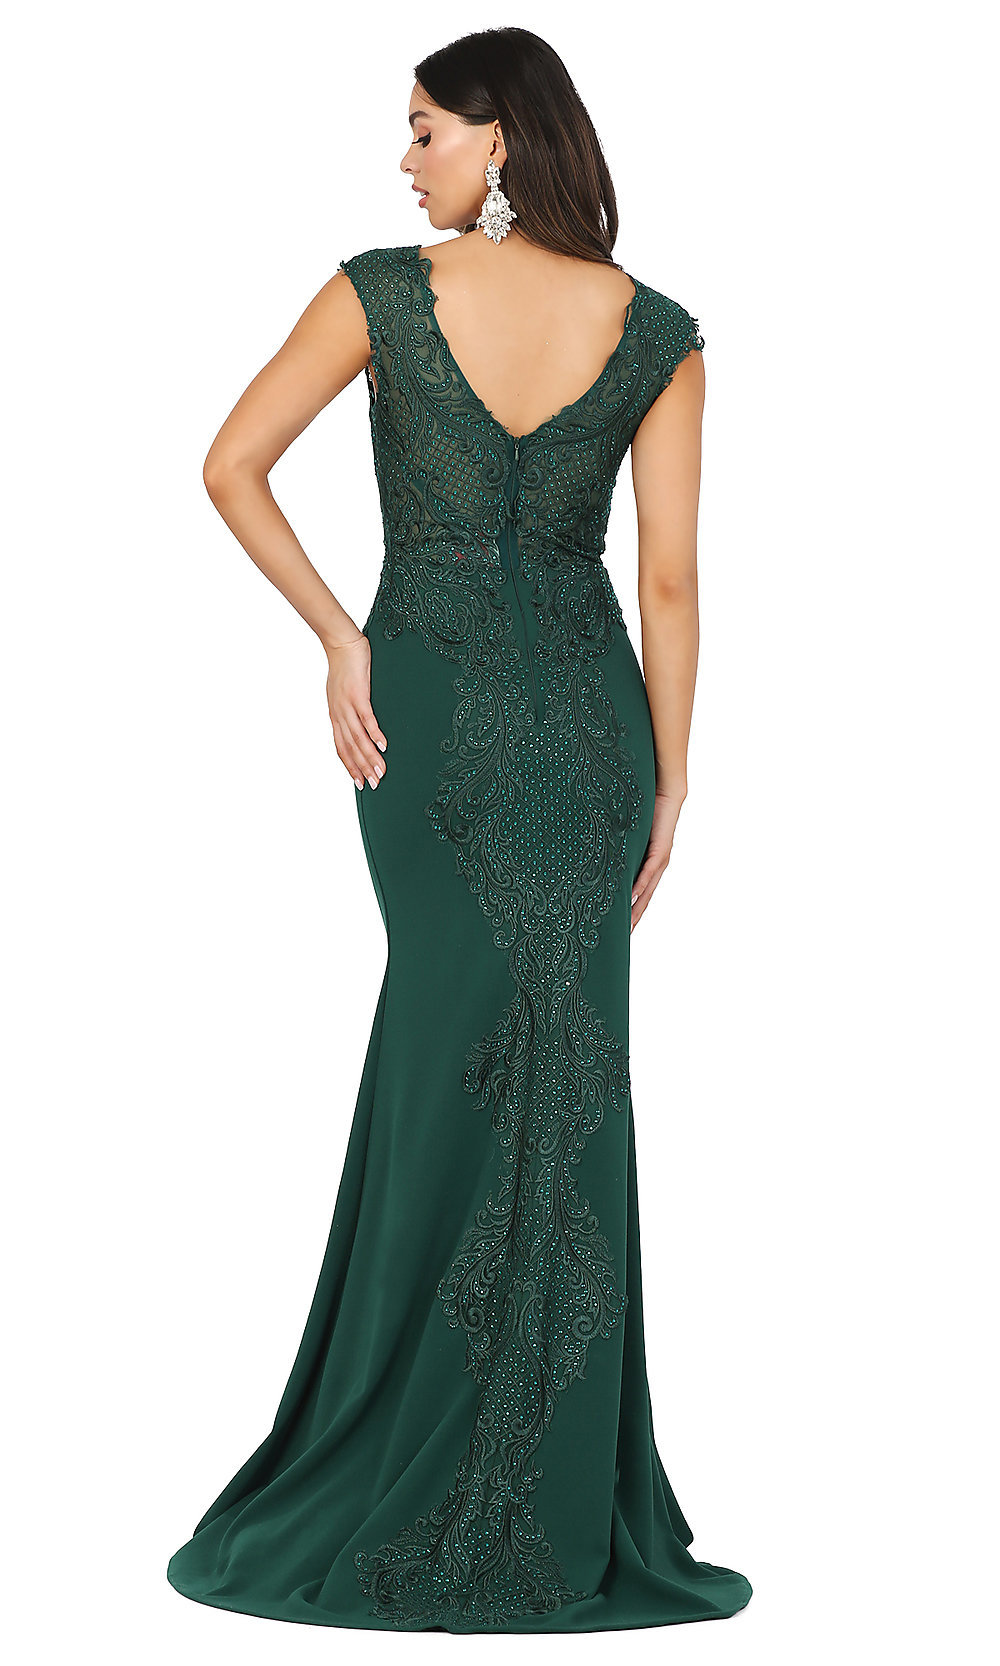 Long Bateau-Neck Prom Dress with a Sheer Bodice